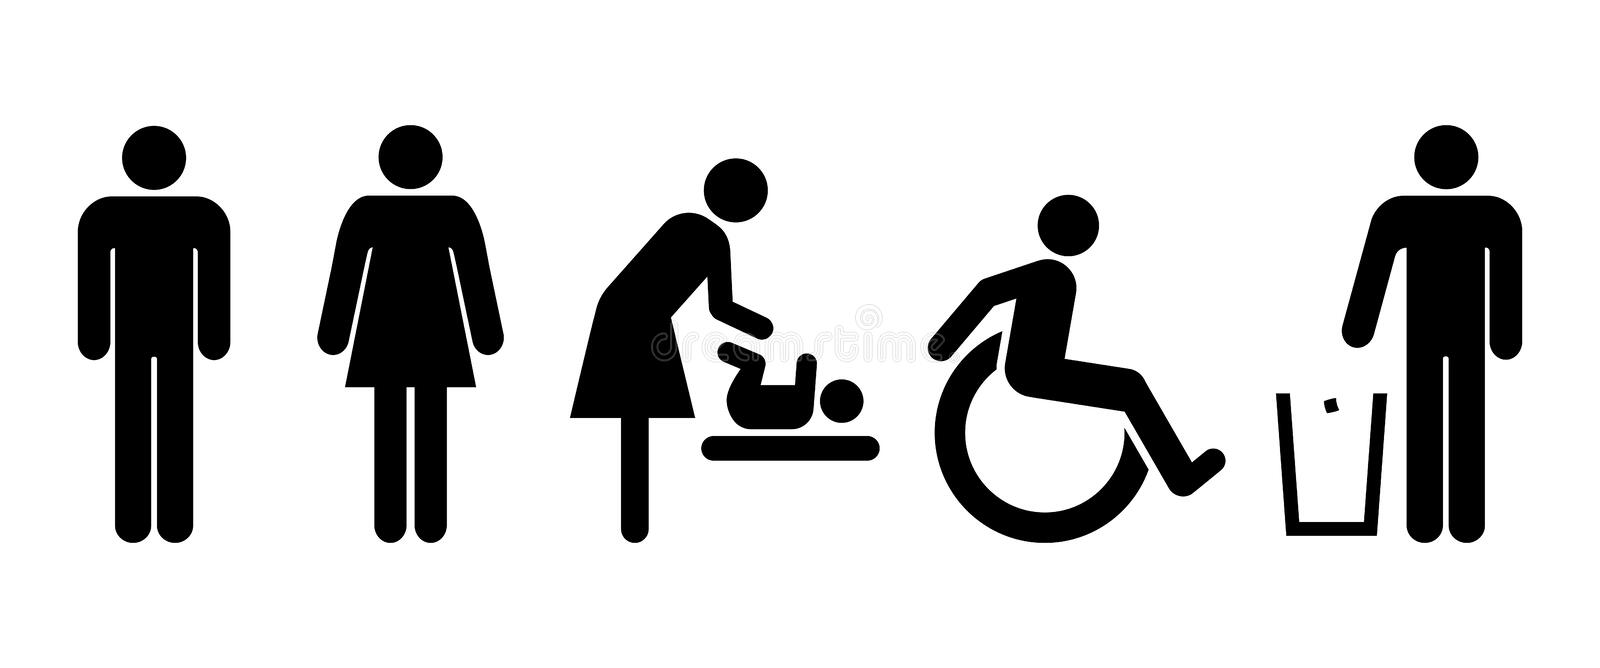 Restroom universal set of signs. Lavatory signs, toilet symbol signs, wc icons royalty free illustration